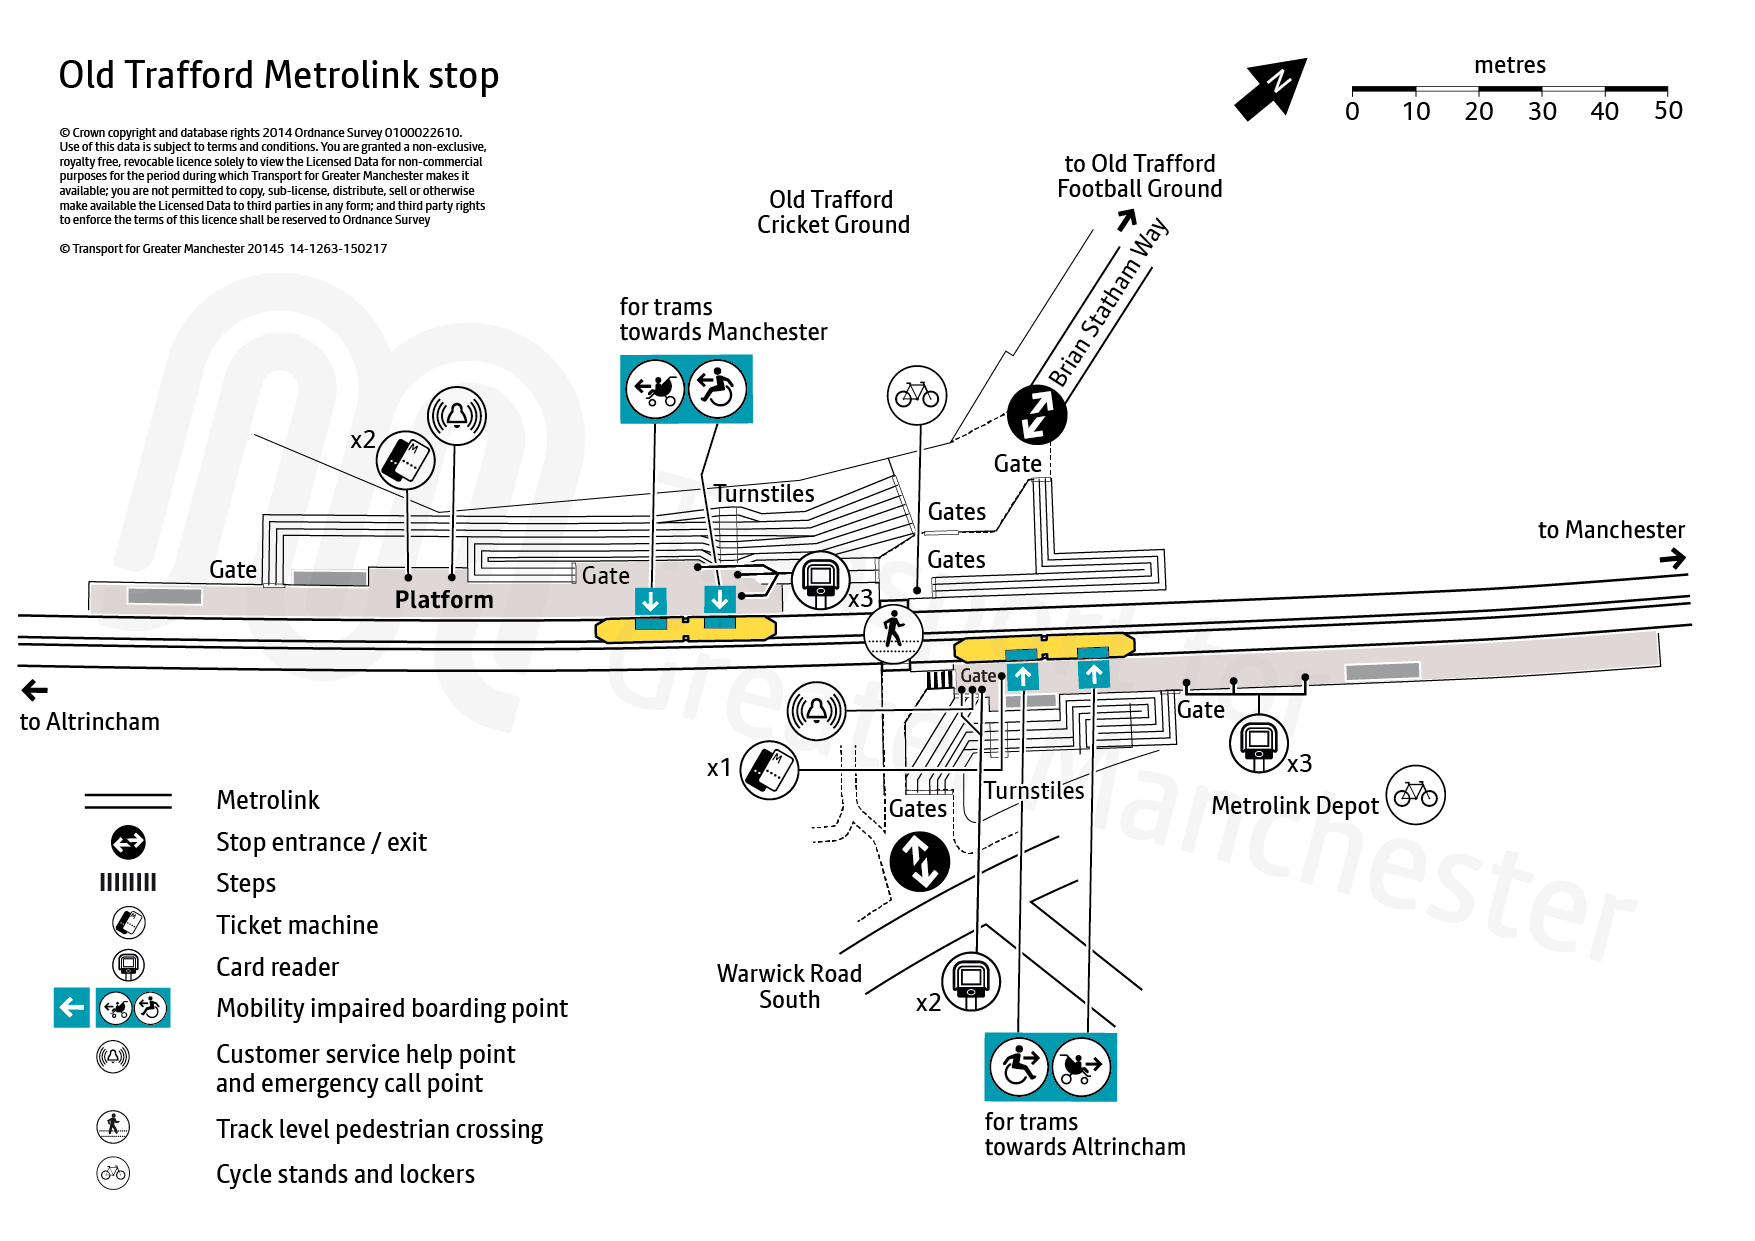 Stop map for Old Trafford tram stop